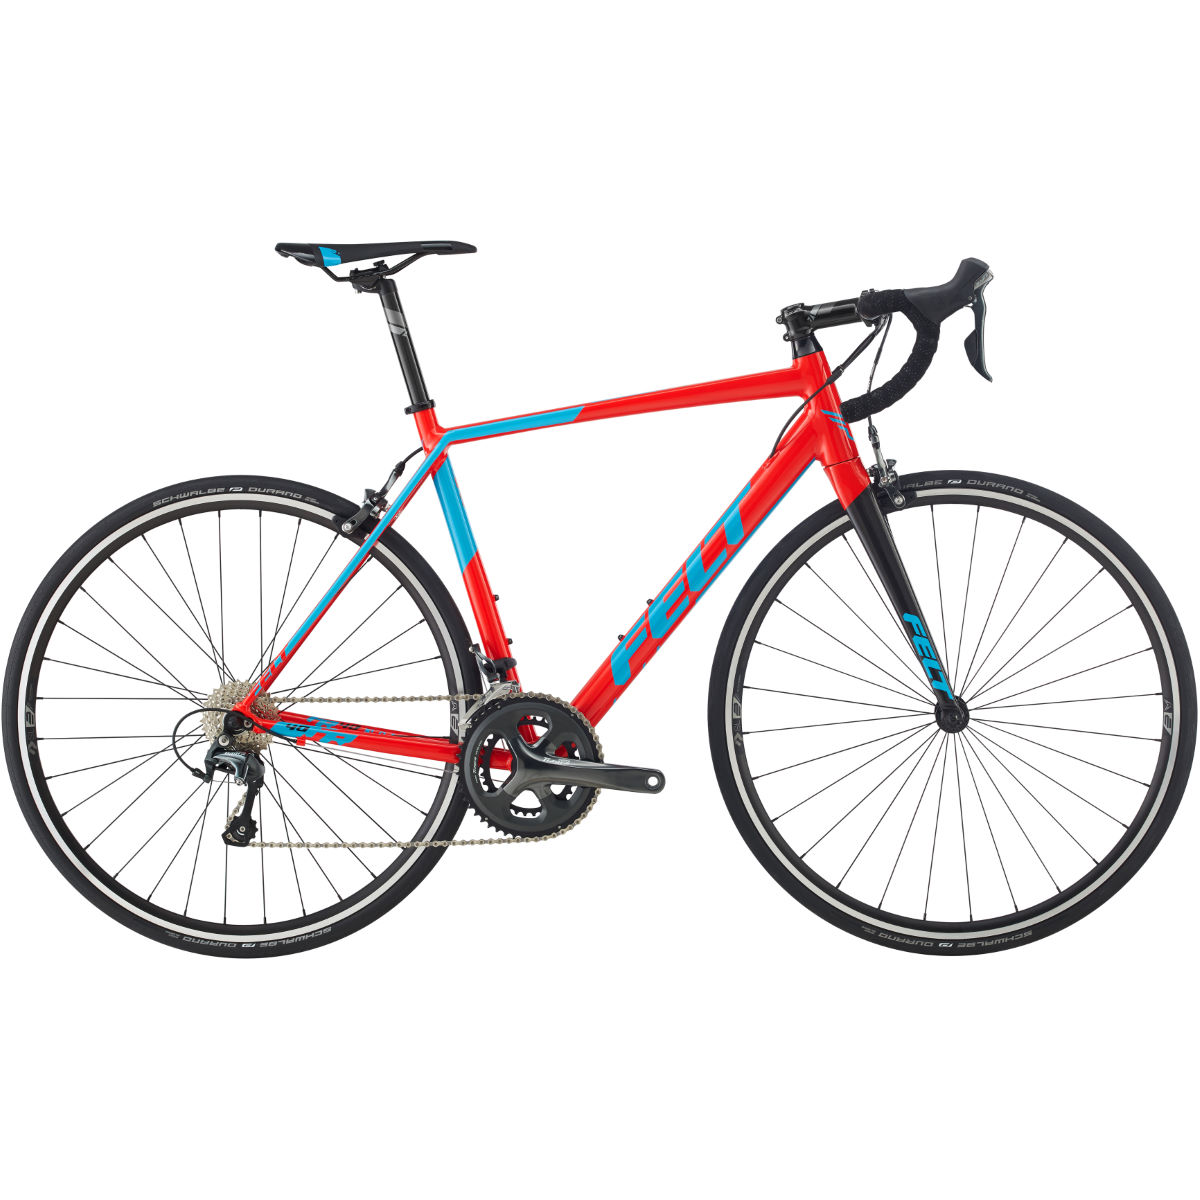 Vélo de route Felt FR40 (Tiagra, 2017) - 51cm Stock Bike Red/Blue